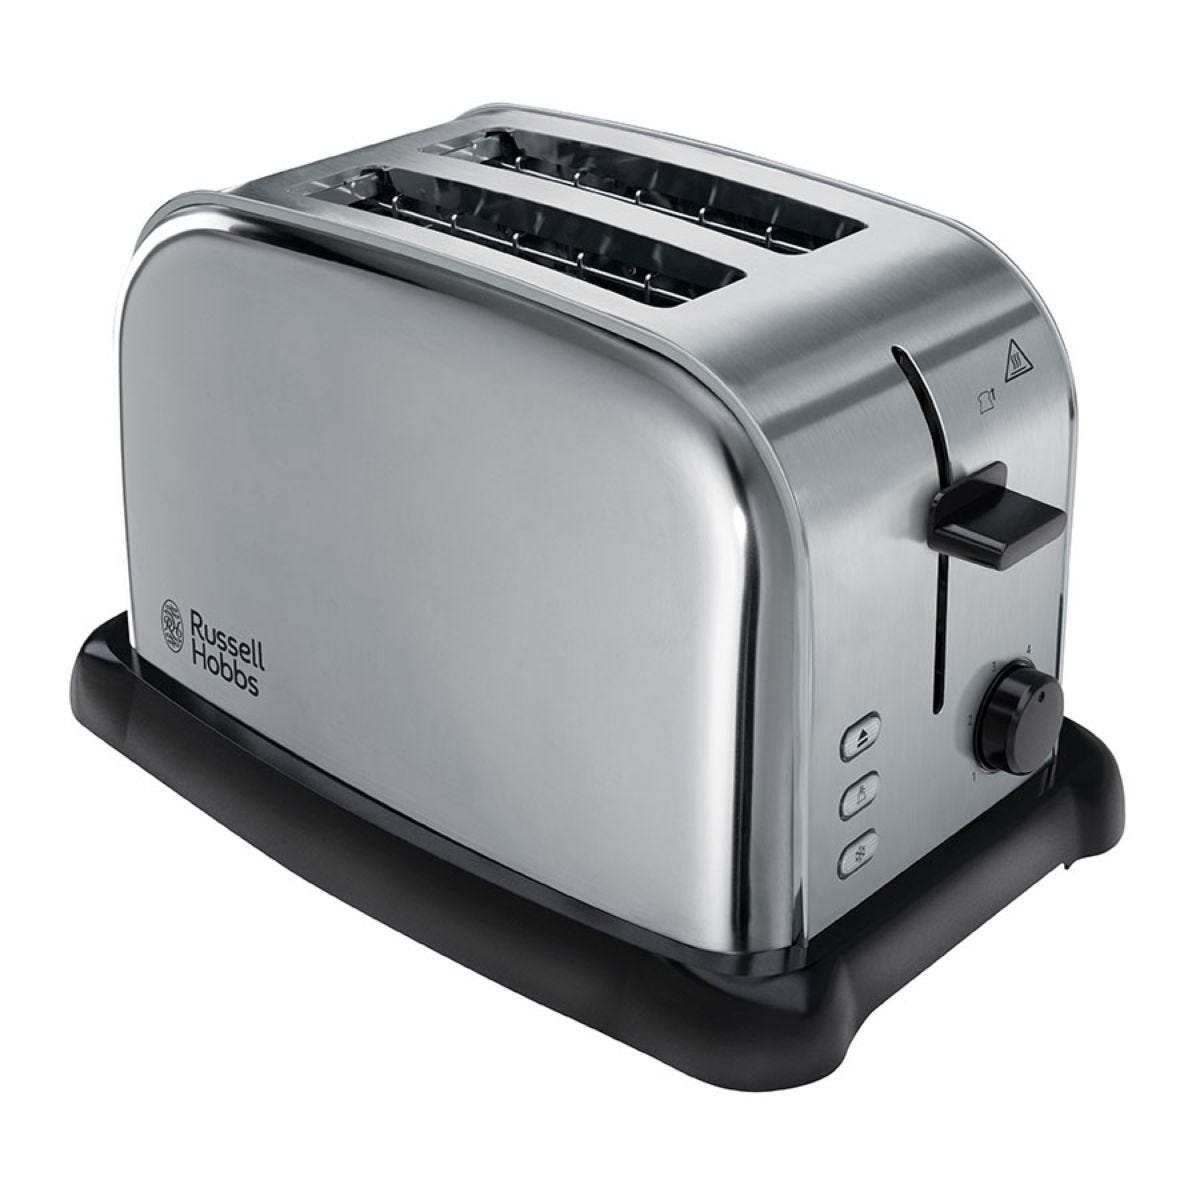 Russell Hobbs Wide-Slot 2-Slice Toaster - Brushed Stainless Steel